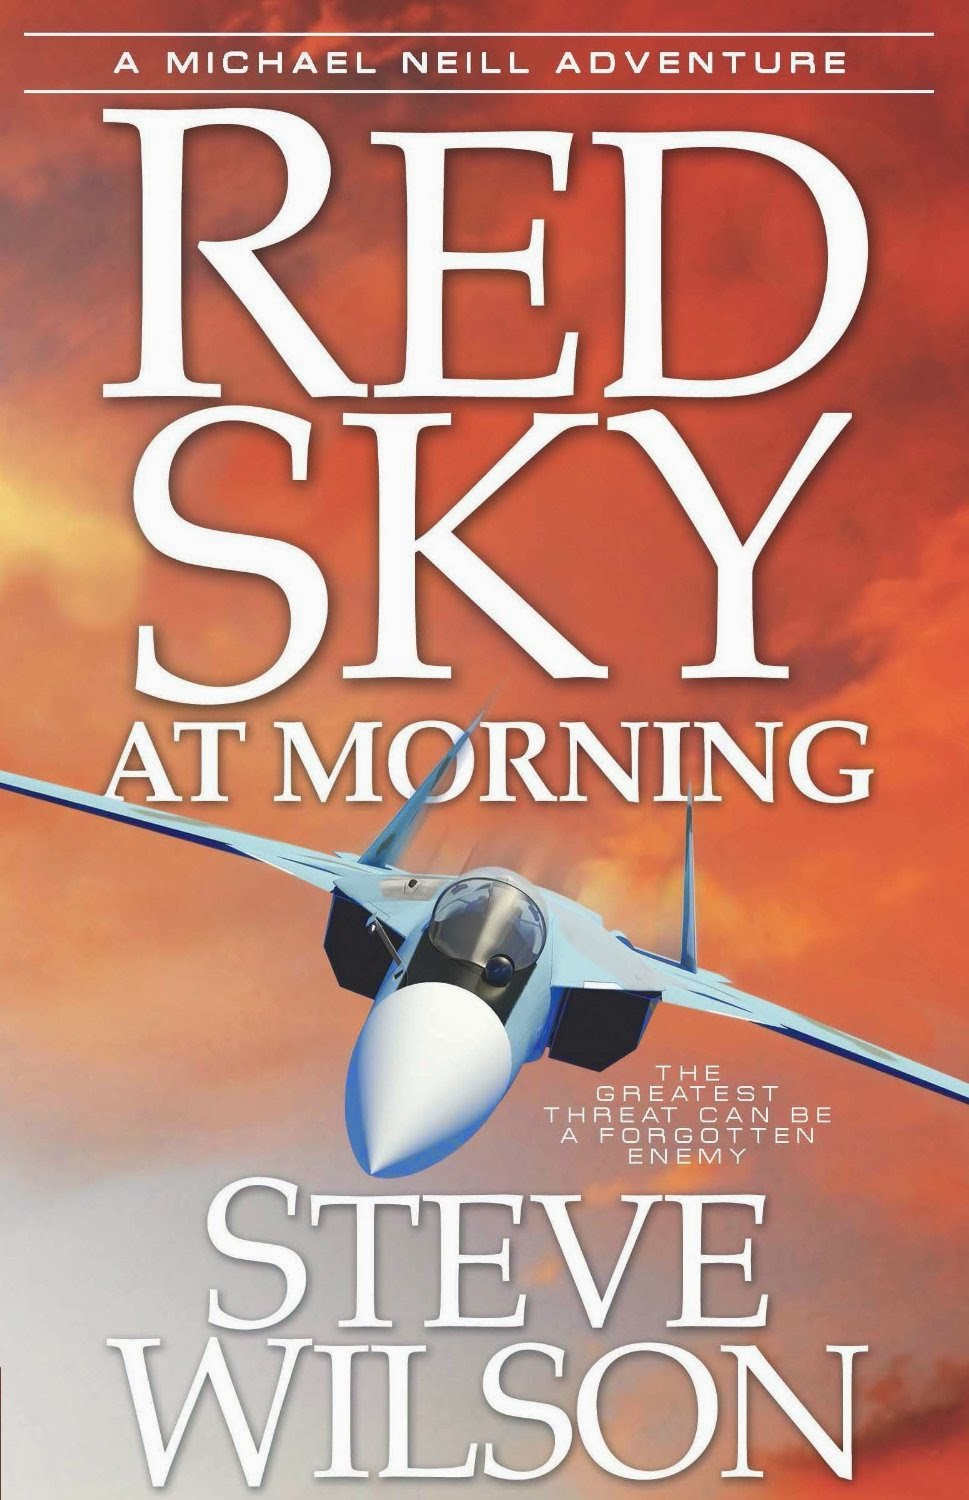 http://www.amazon.com/Morning-Michael-Neill-Adventure-Book-ebook/dp/B0086604YM/ref=sr_1_8?ie=UTF8&qid=1406818040&sr=8-8&keywords=Red+Sky+At+Morning